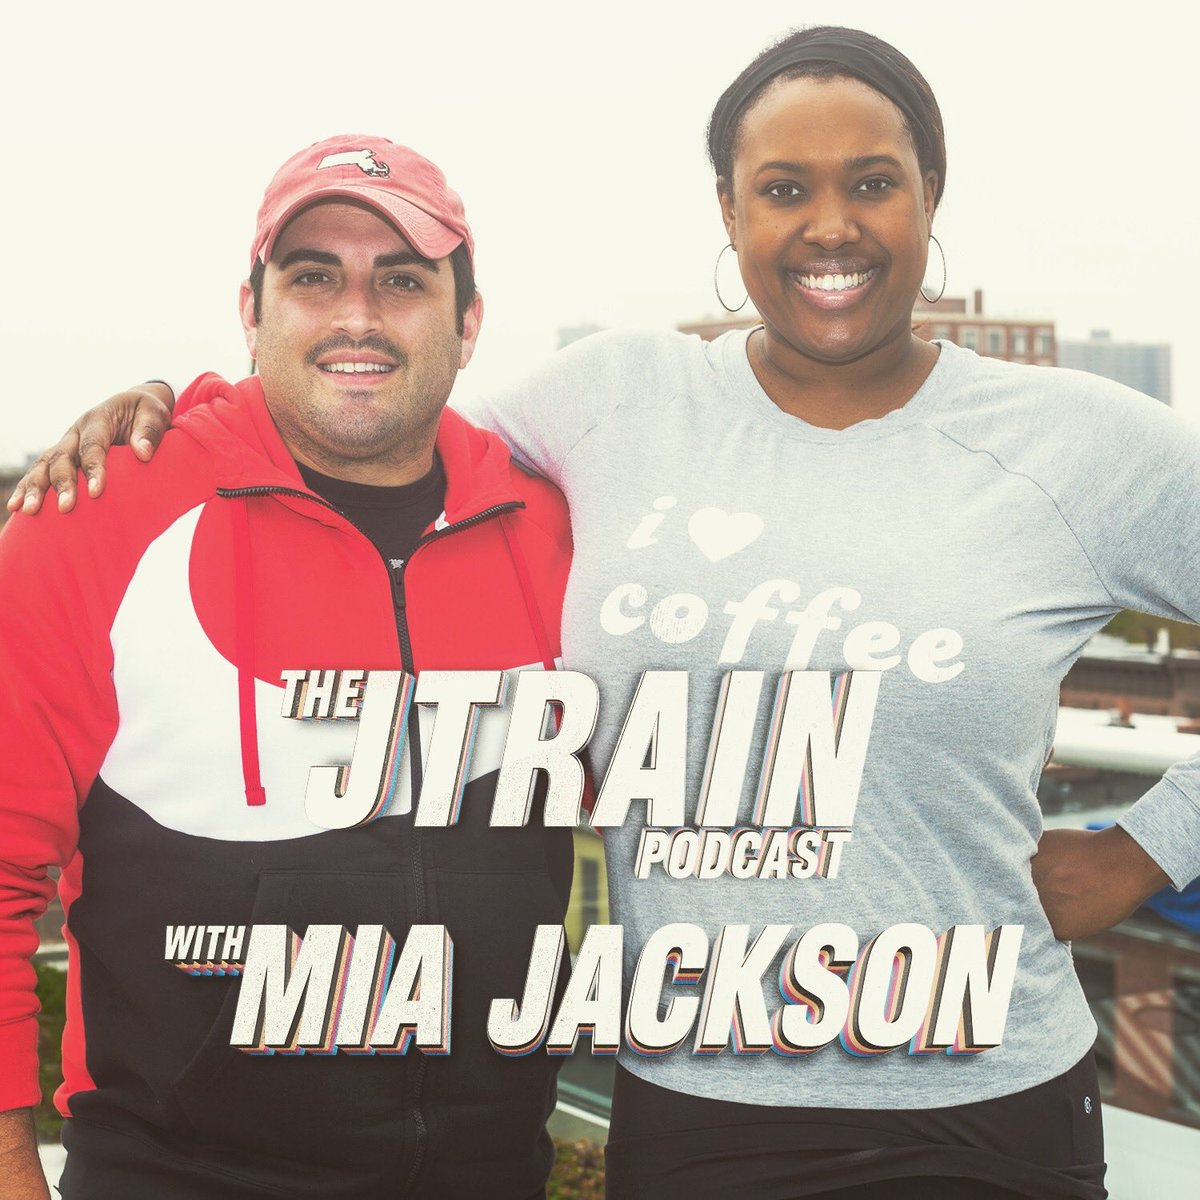 NEW @JTrainPodcast with @miacomedy!! Only Go To The Ball To Have A Good Time >> https://podcasts.apple.com/us/podcast/the-jtrain-podcast/id672249013?i=1000437106199 …